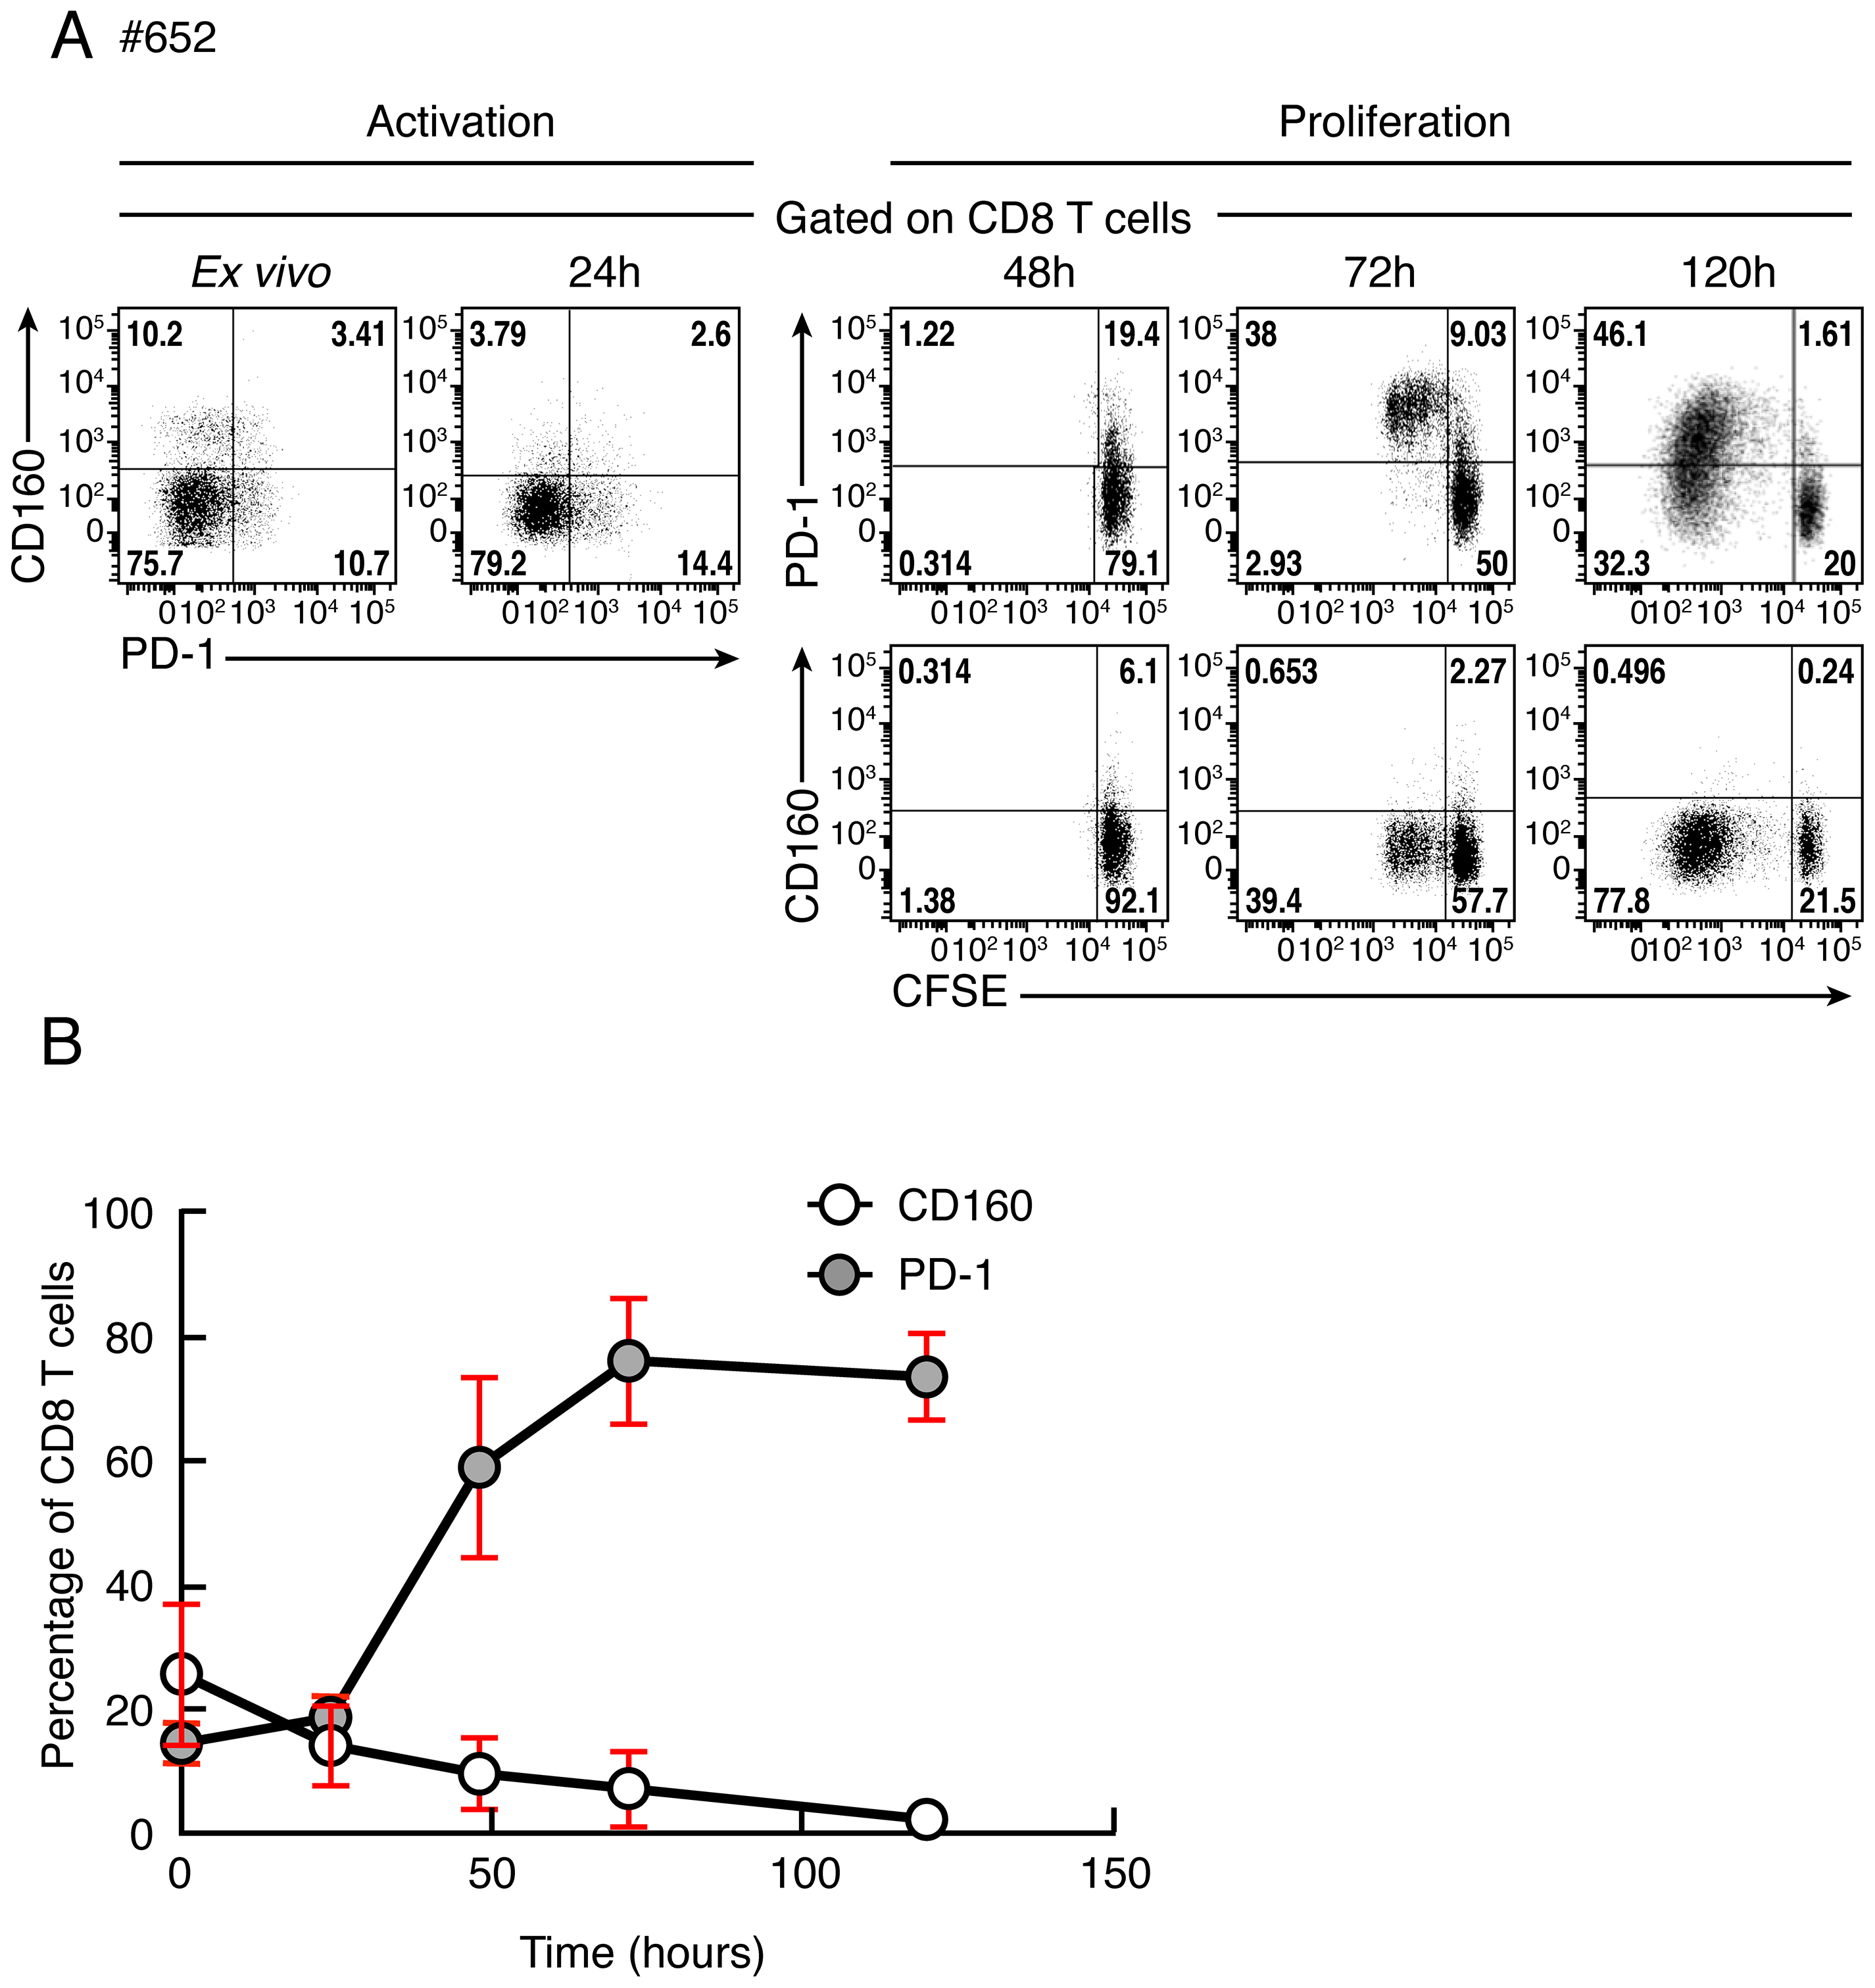 Kinetic of CD160 or PD-1 expression on CD8 T cells stimulated upon T-cell stimulation.